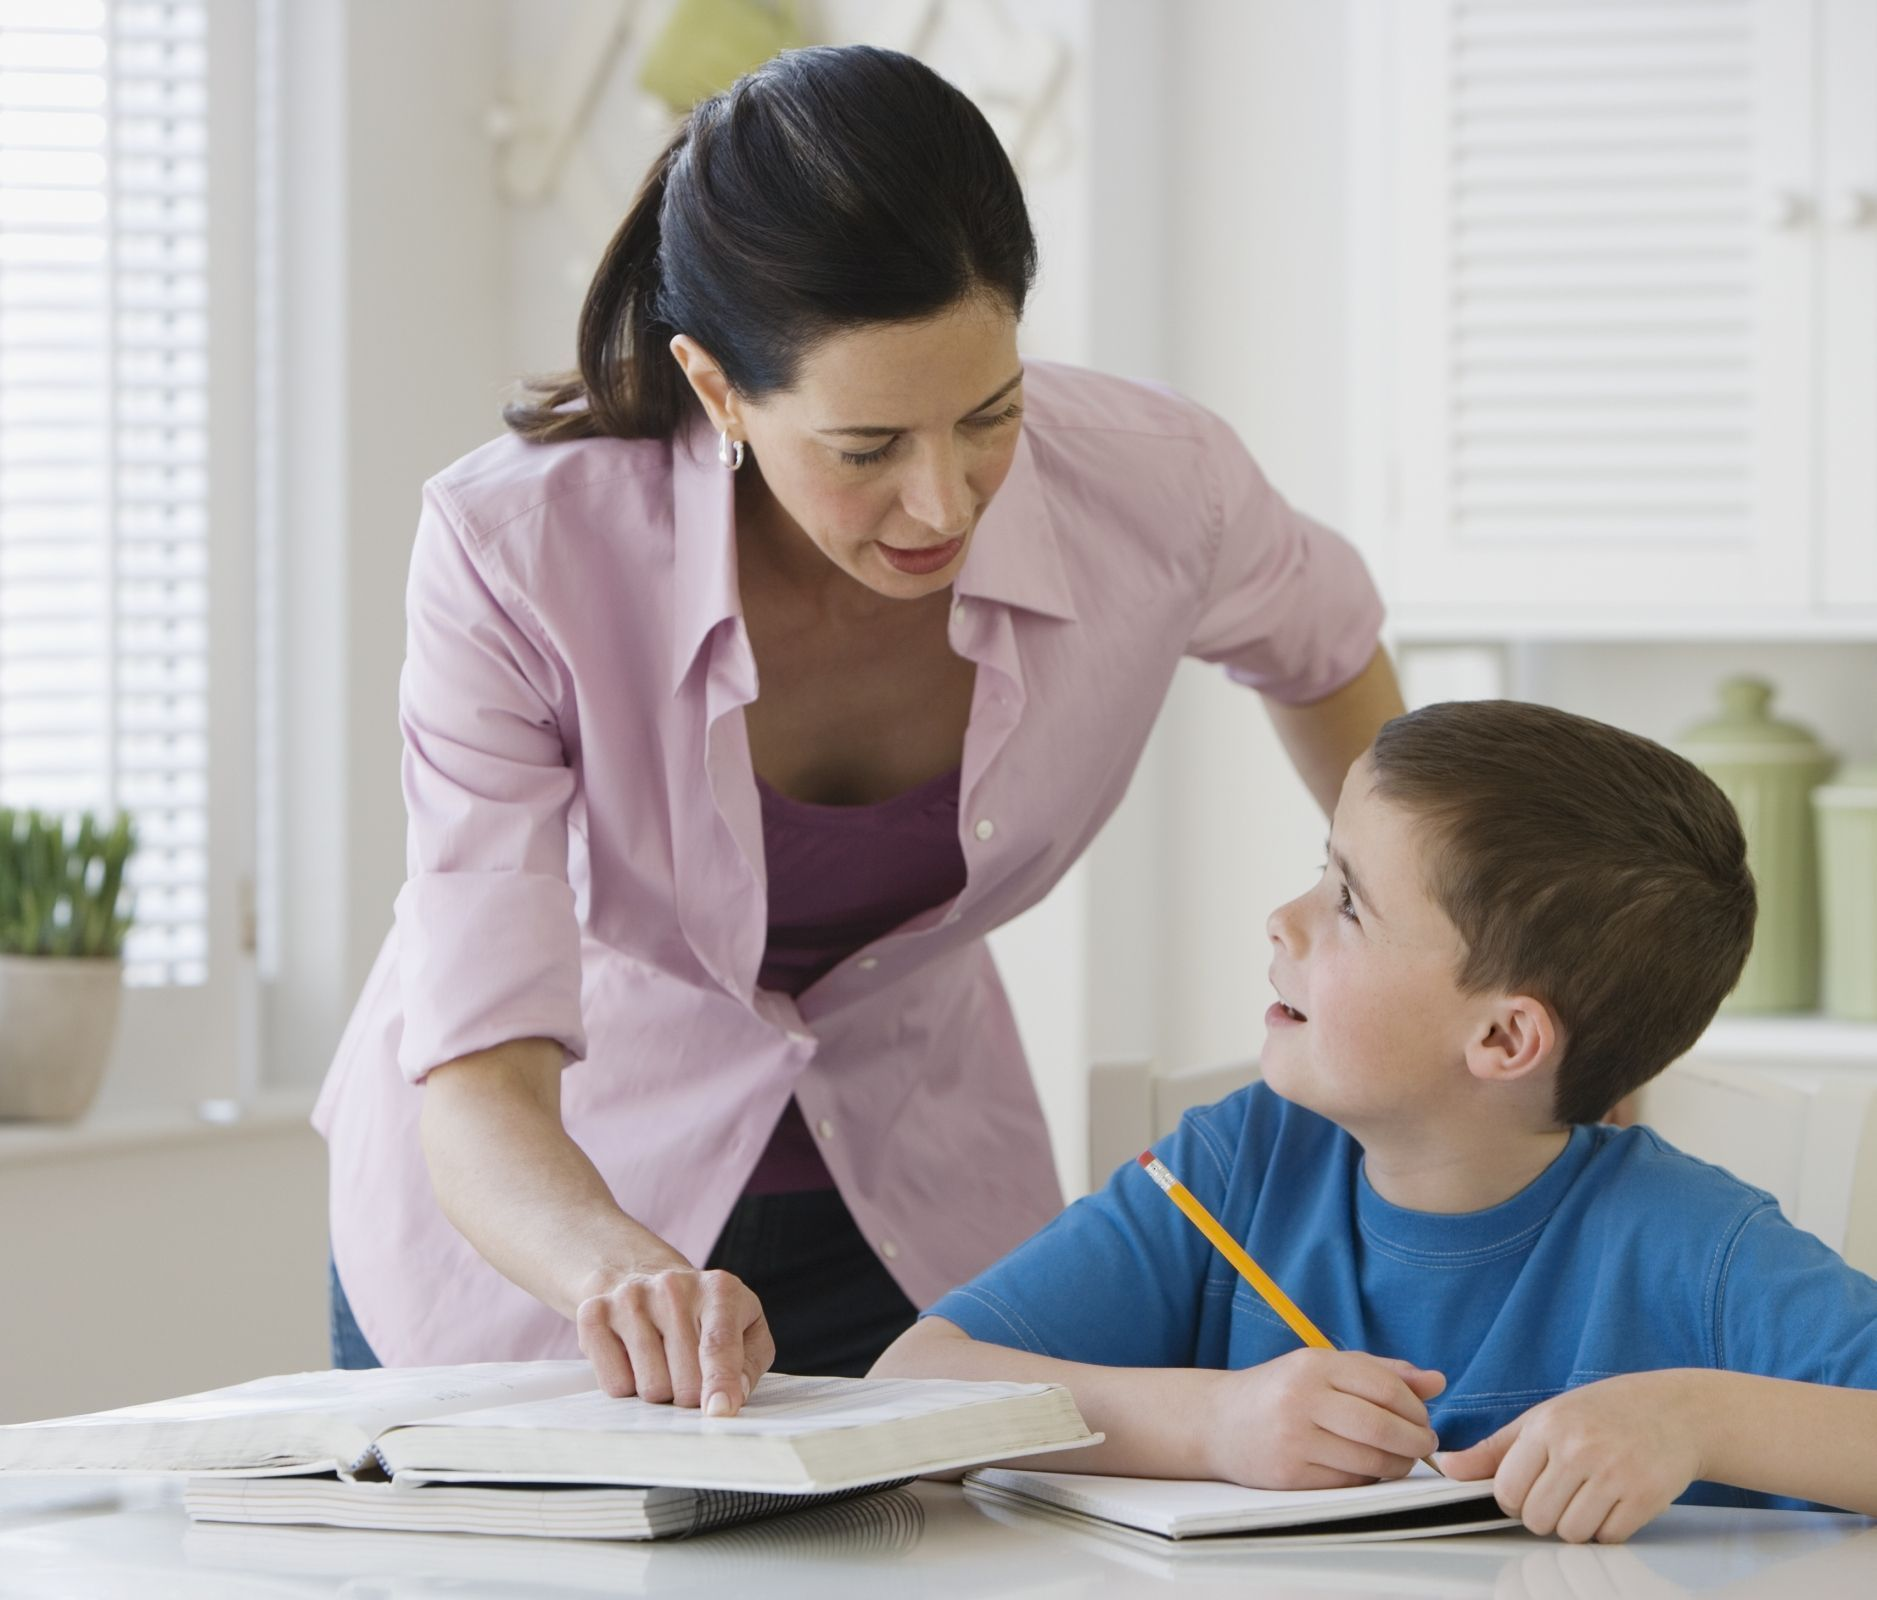 Job Search Tips for Stay-At-Home Moms Returning to Work